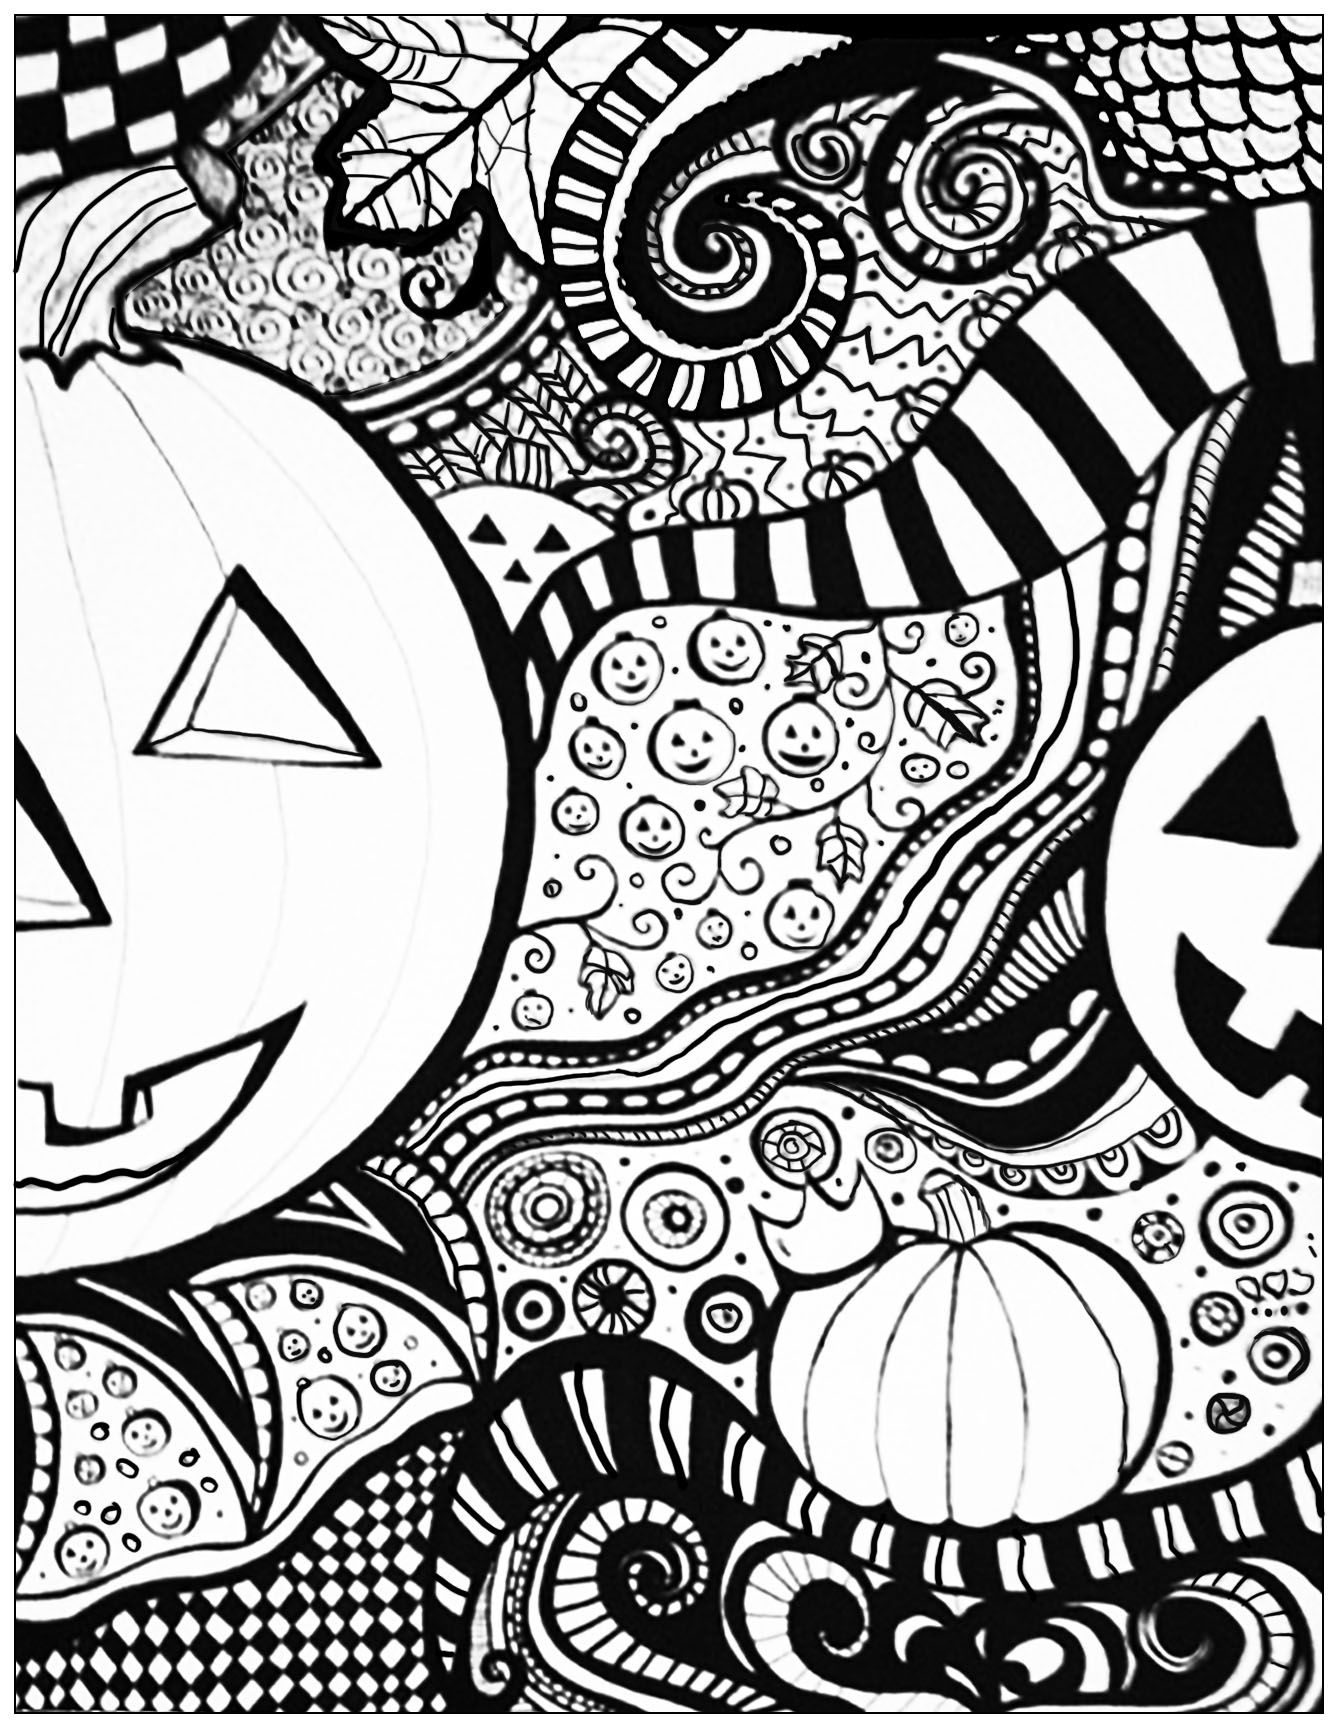 Coloring pages for adults zentangle - Halloween Zentangle Pumpkin Adult Coloring Page